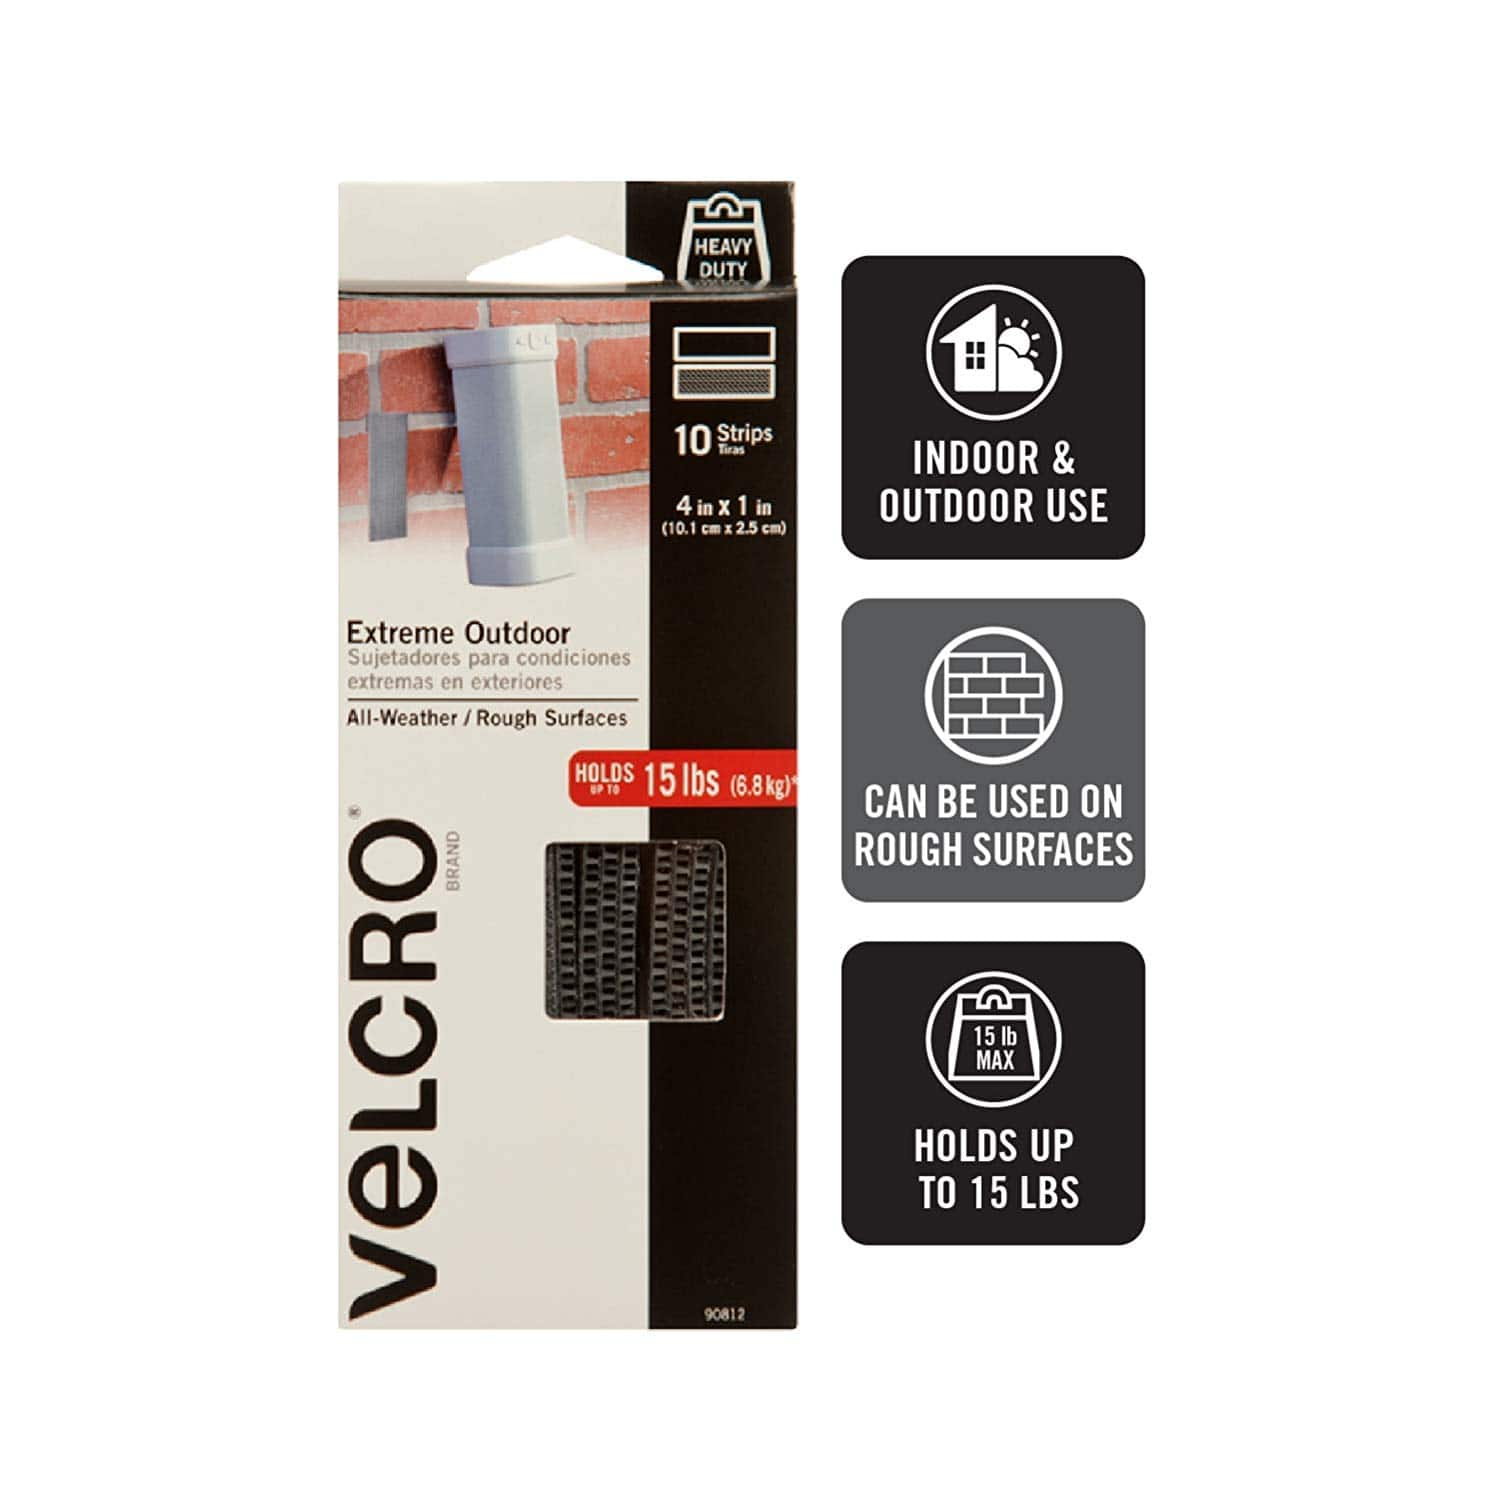 VELCRO Brand Industrial Fasteners Extreme Outdoor Weather Conditions | Professional Grade Heavy Duty Strength Holds up to 15 lbs on Rough Surfaces, 4in x 1in (10pk), Strips $4.28